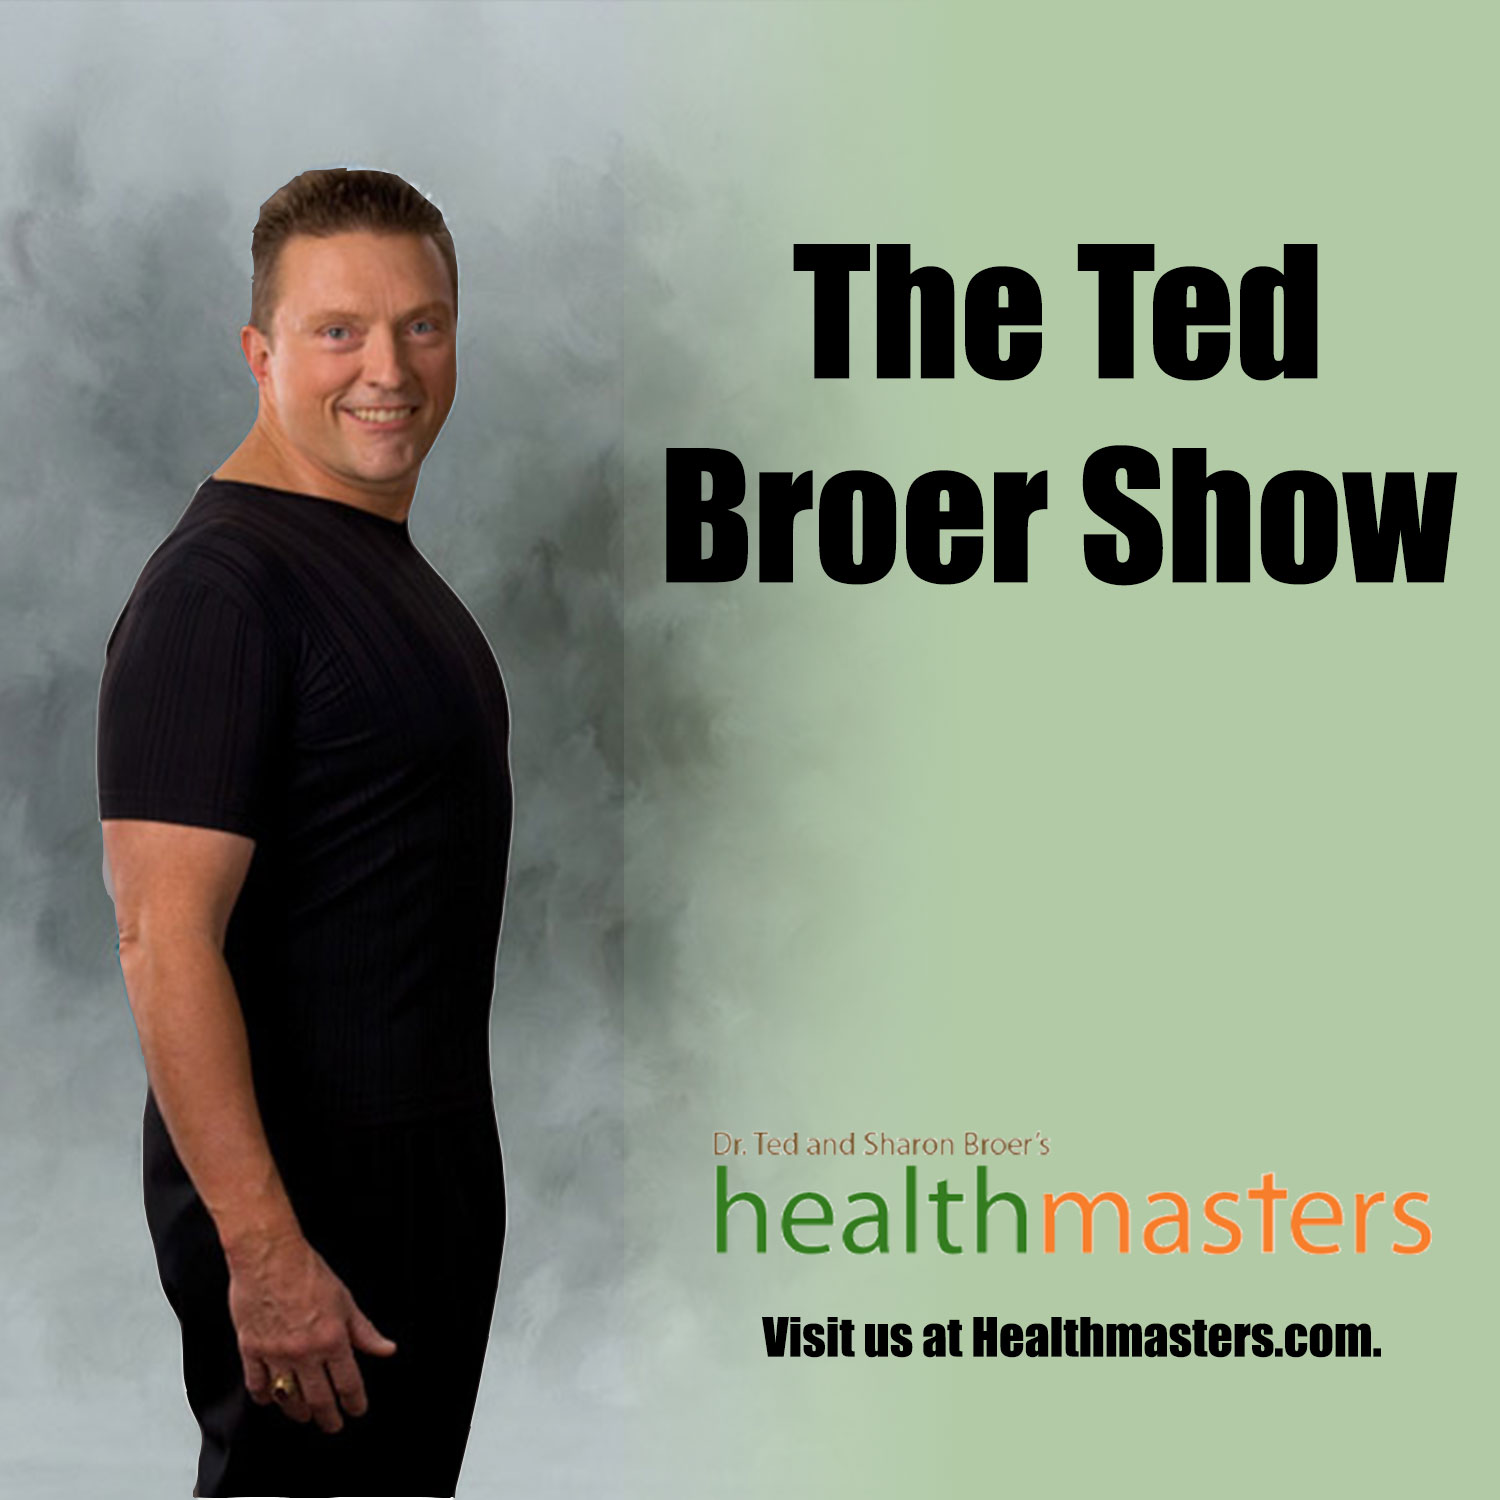 The Ted Broer Show